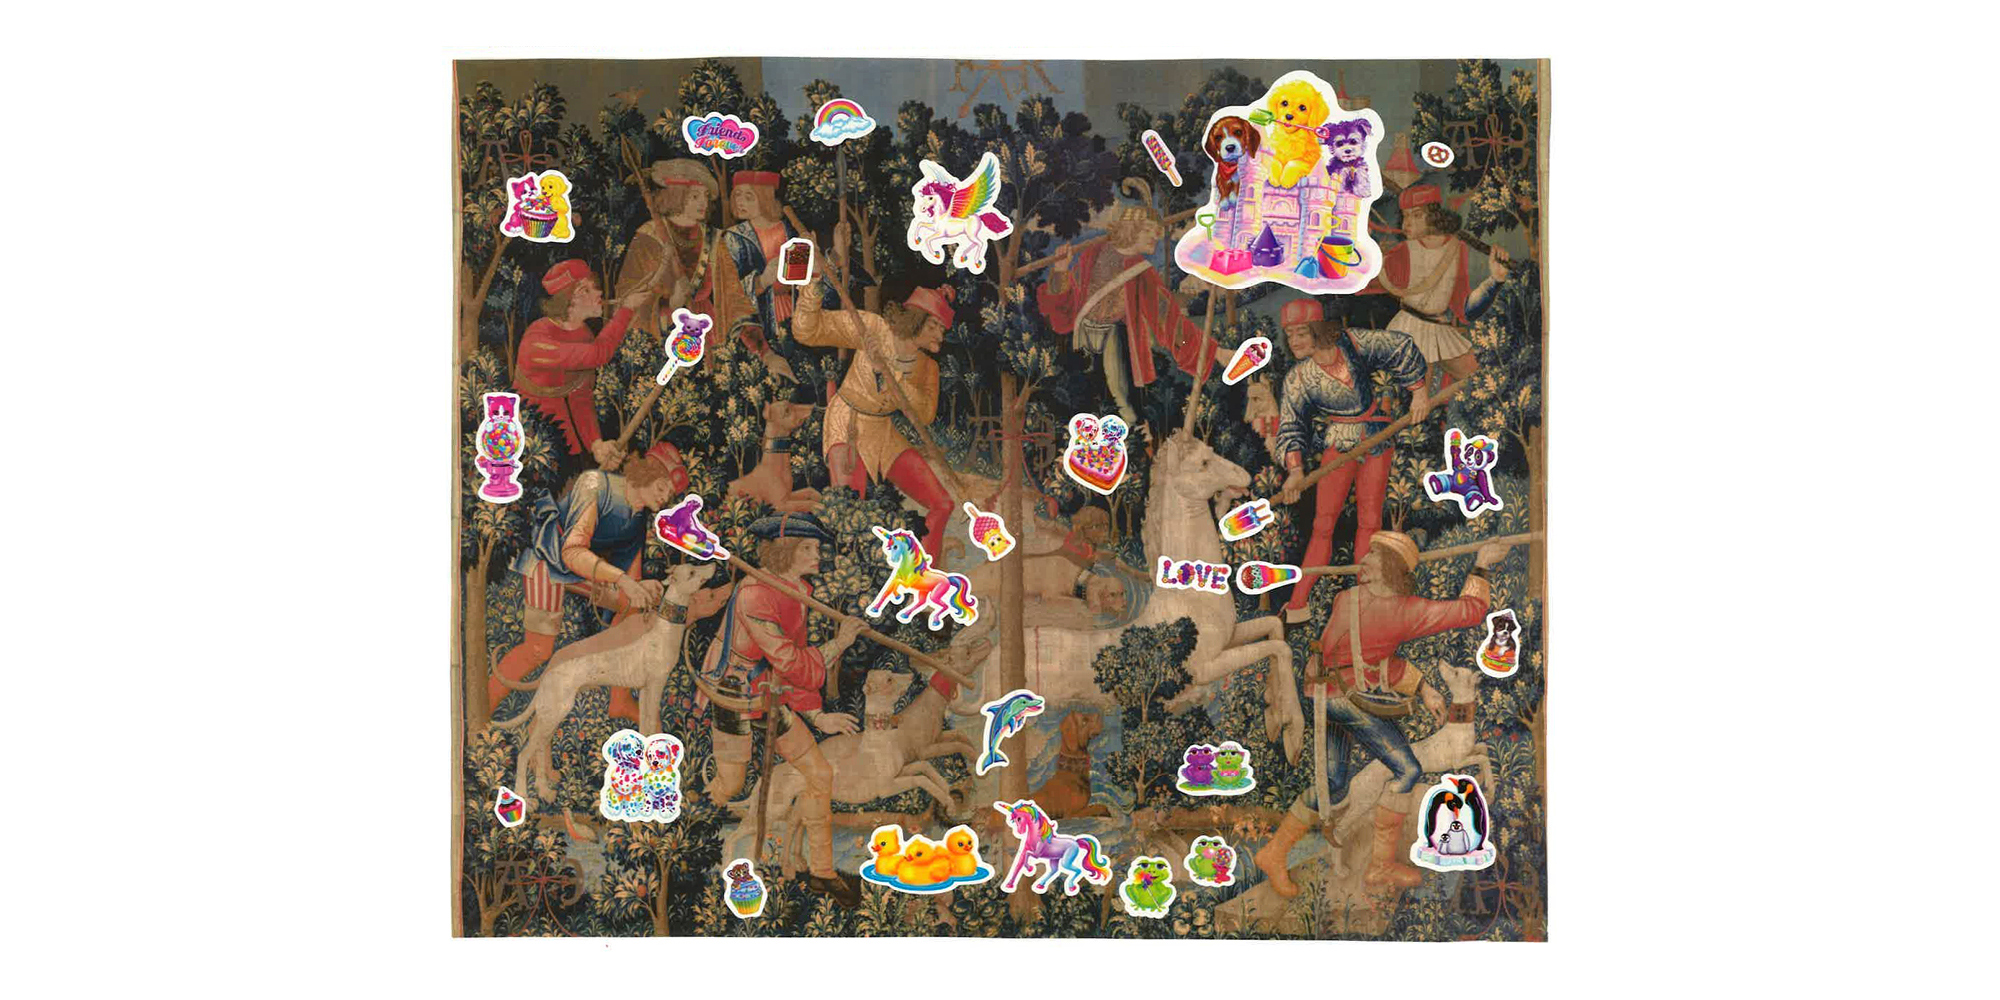 Sage Mtahtah - The Unicorn is Attacked: A Sticker Collage Study